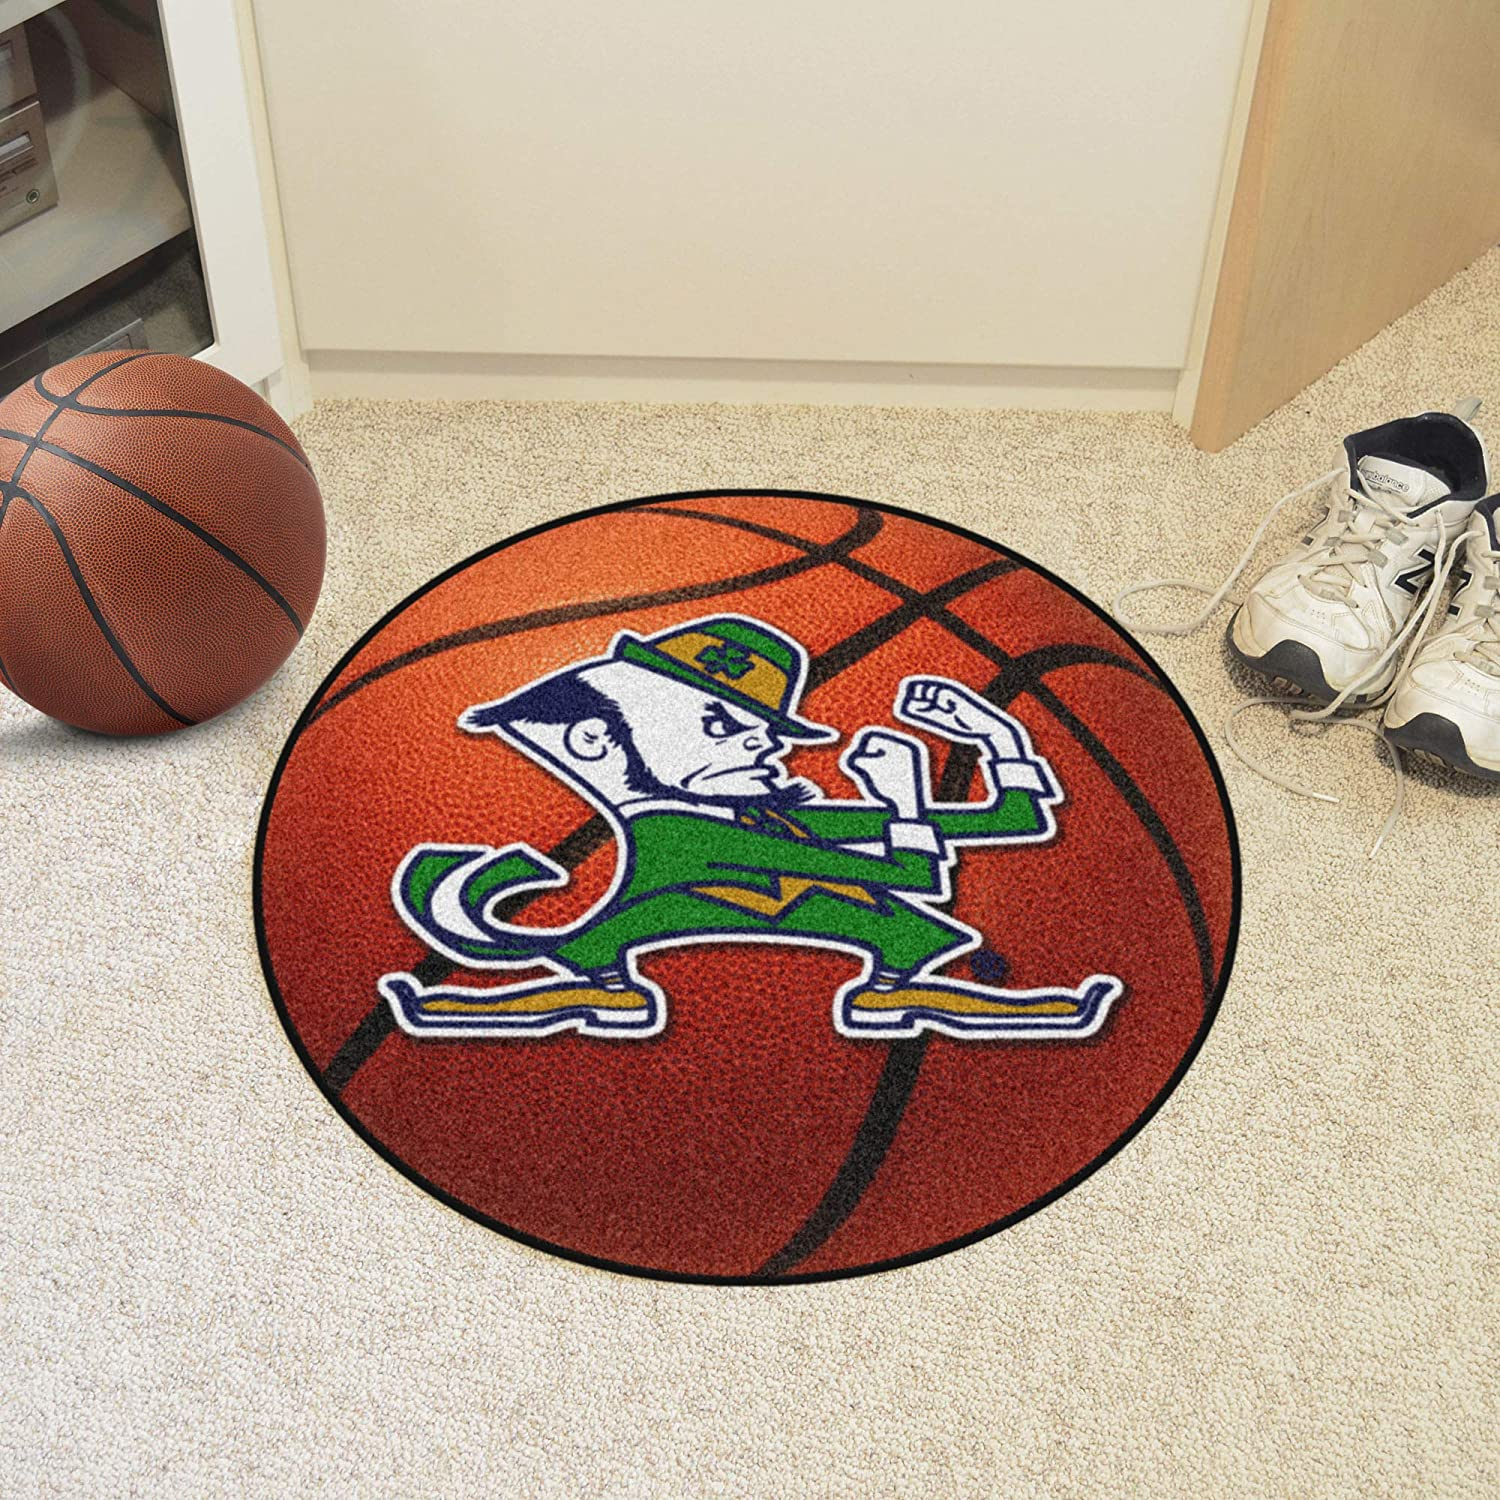 FANMATS NCAA Notre Dame Fighting Irish Nylon Face Ultimat Rug